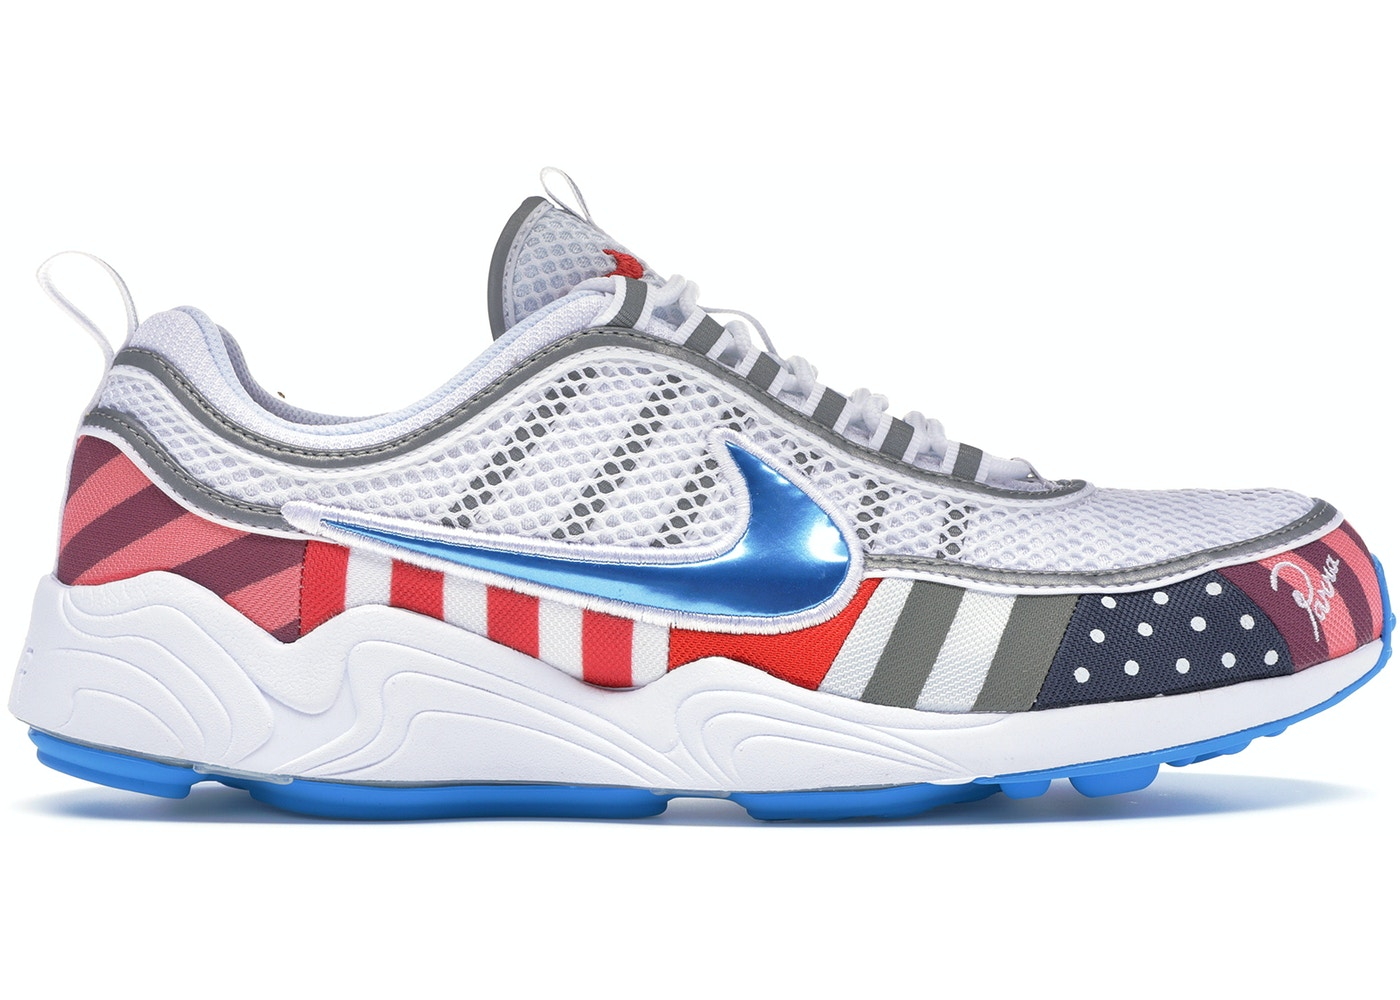 official photos b98b2 5e6b4 Air Zoom Spiridon Parra - AV4744-100